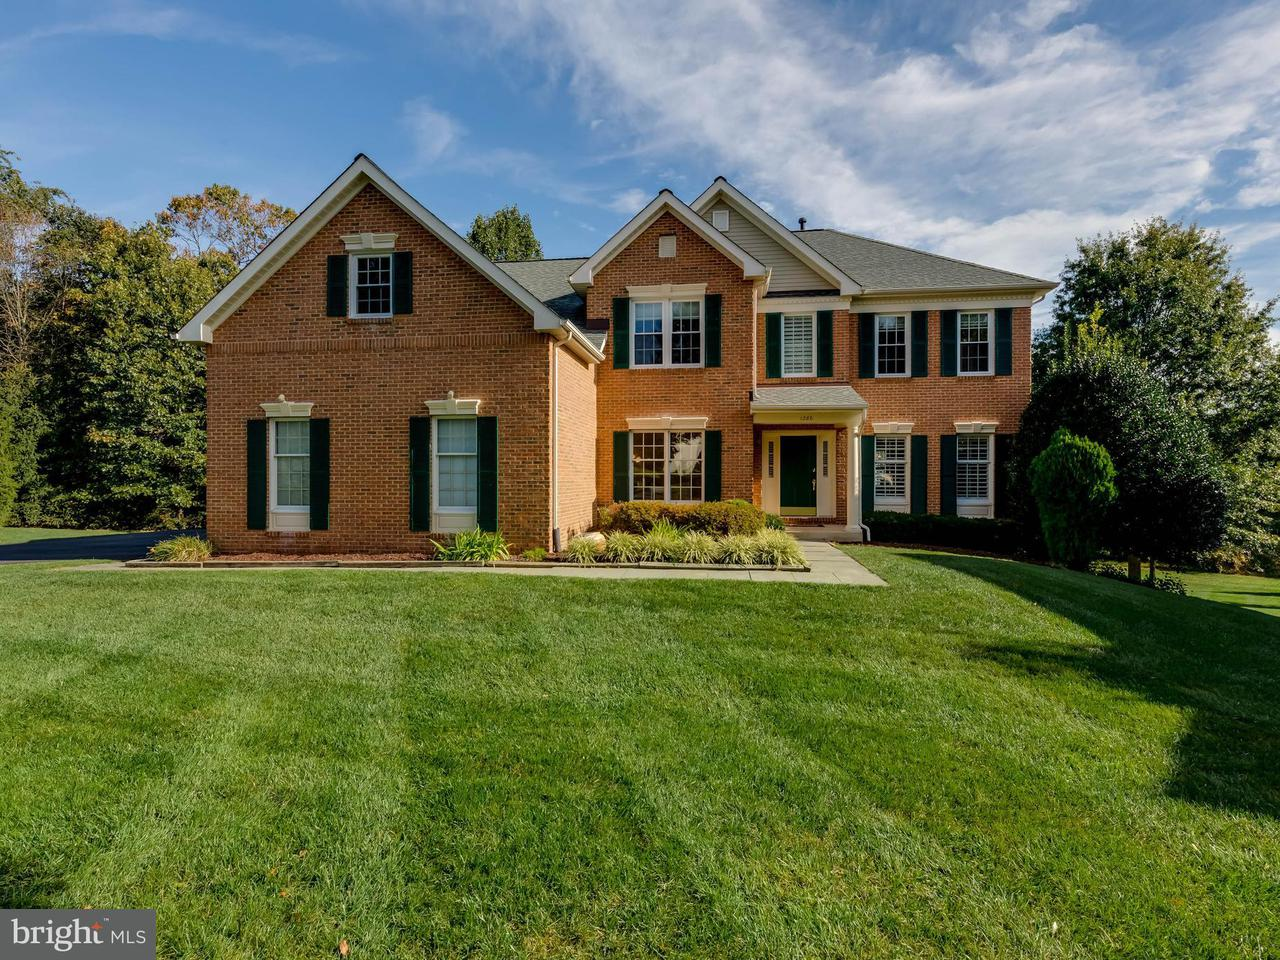 Maison unifamiliale pour l Vente à 1286 Gatesmeadow Way 1286 Gatesmeadow Way Reston, Virginia 20194 États-Unis